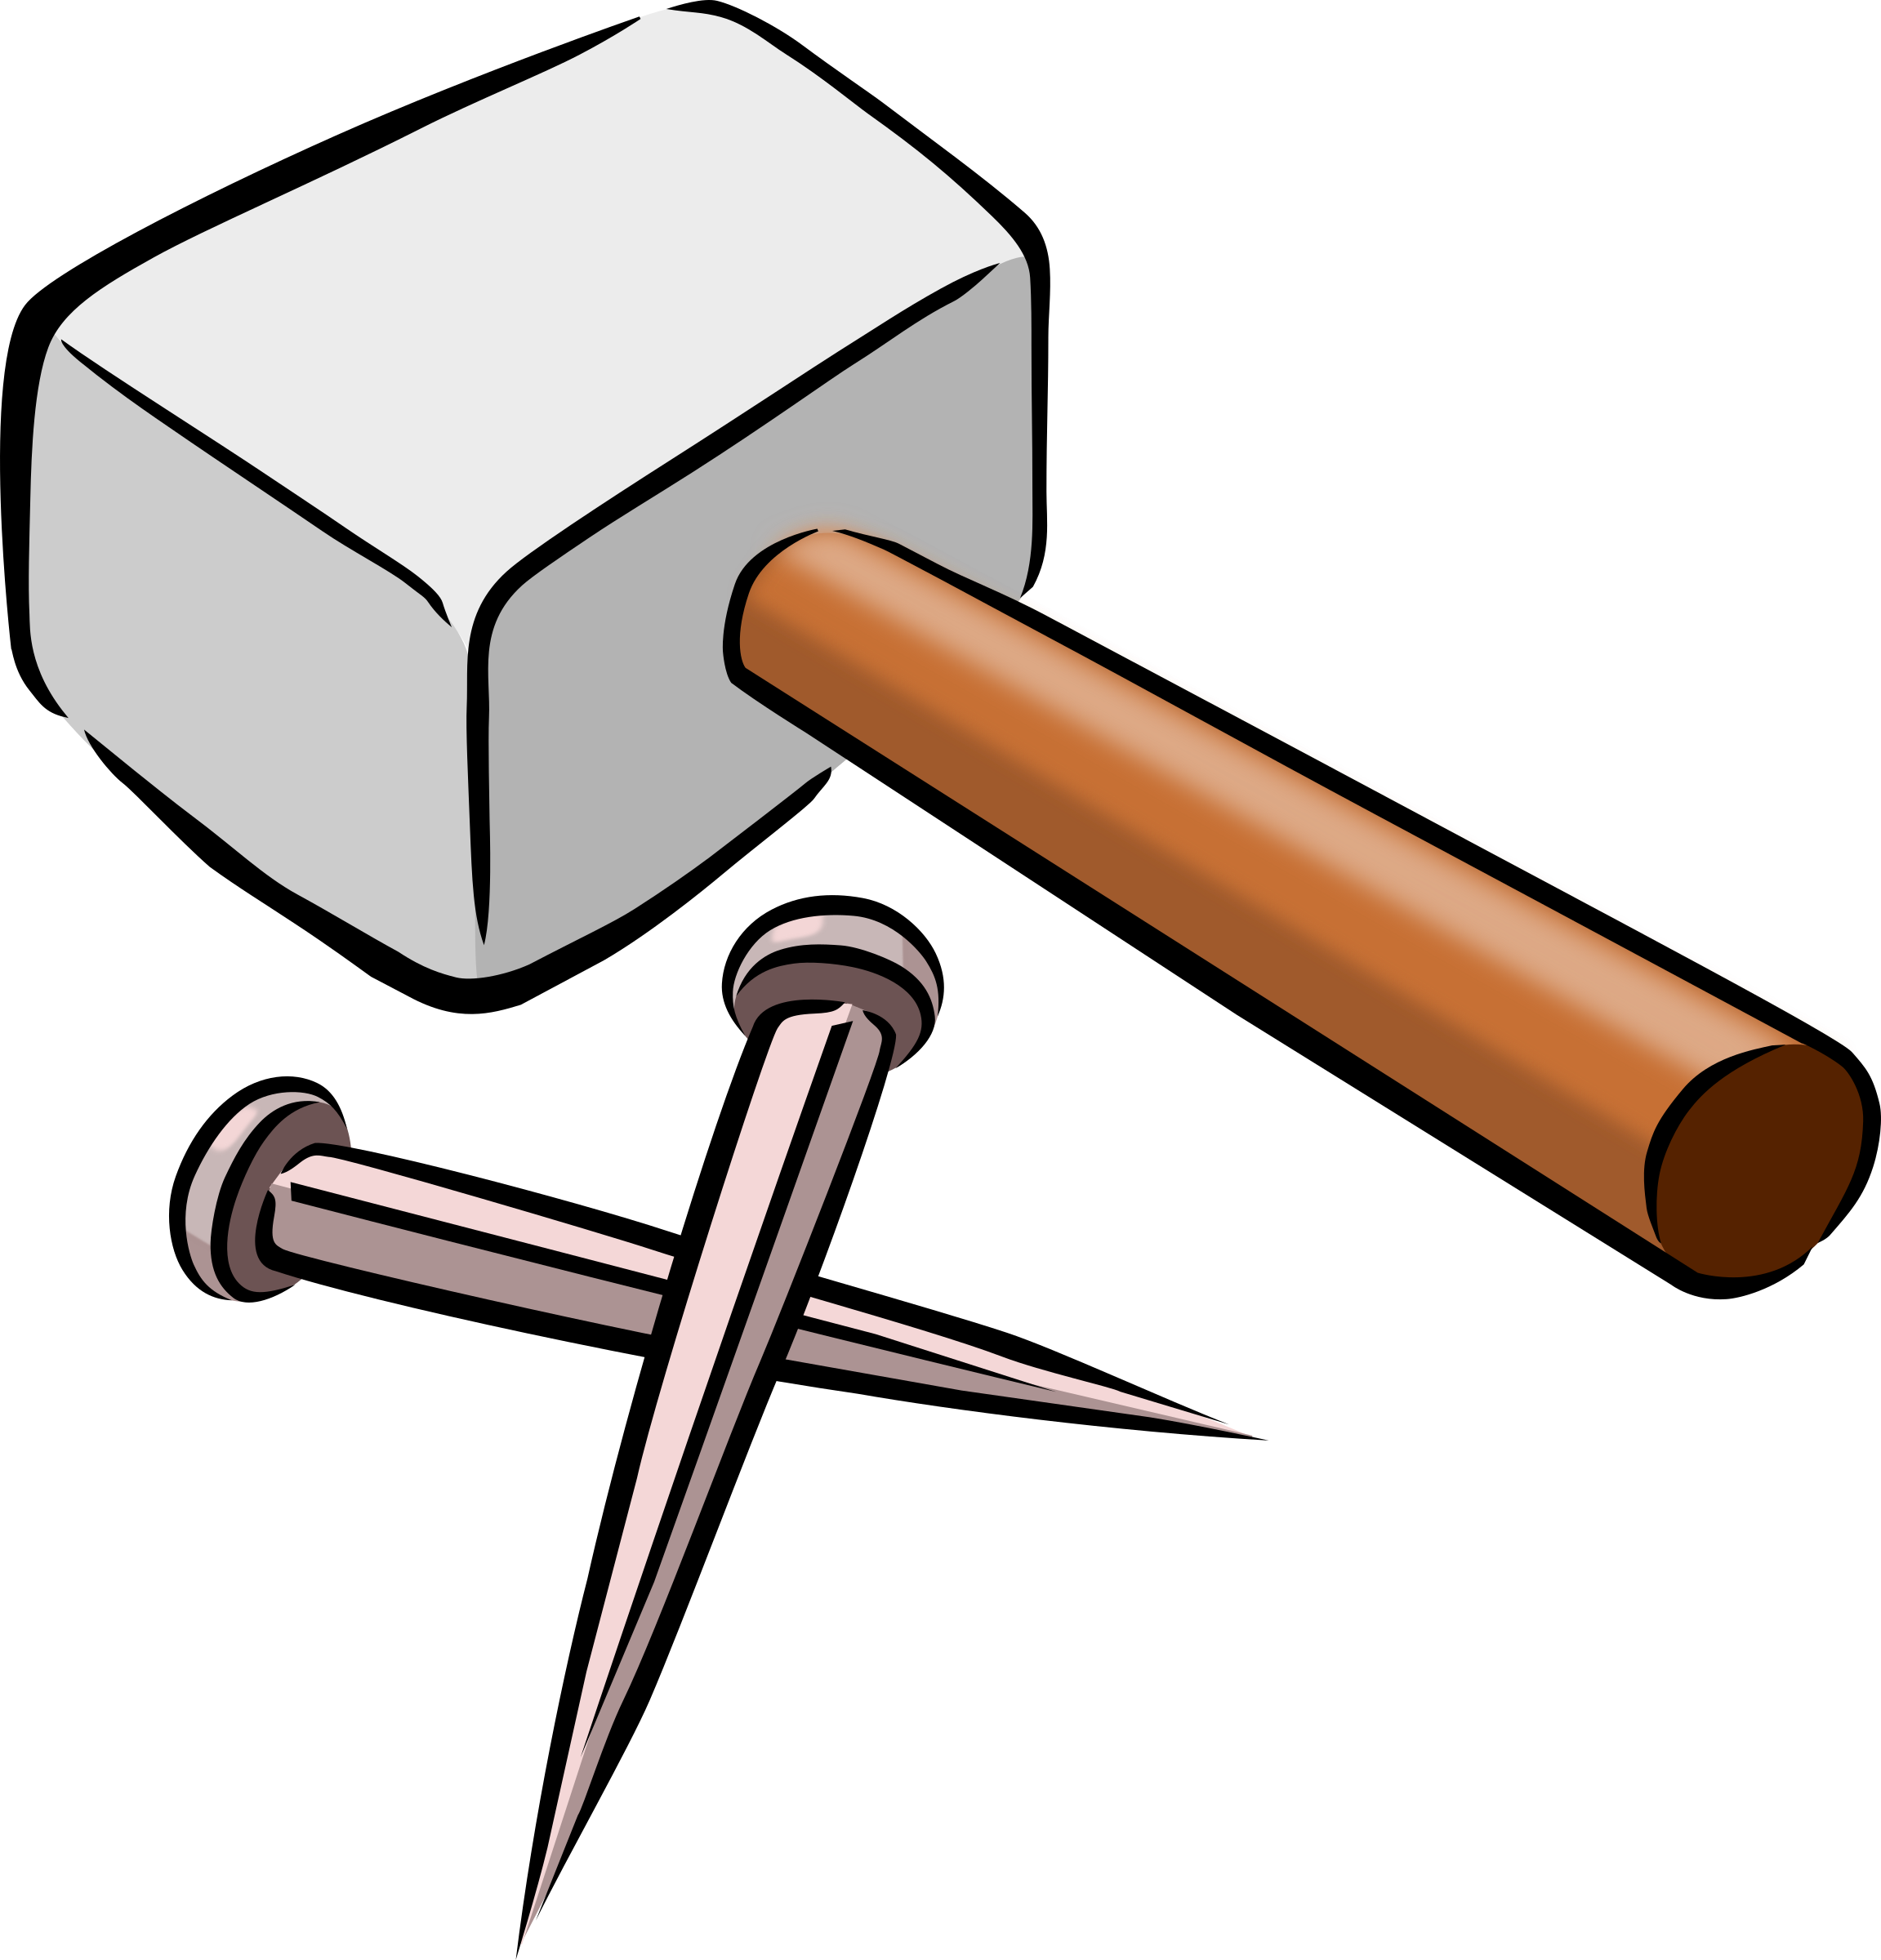 Nail clipart small hammer. And nails big image